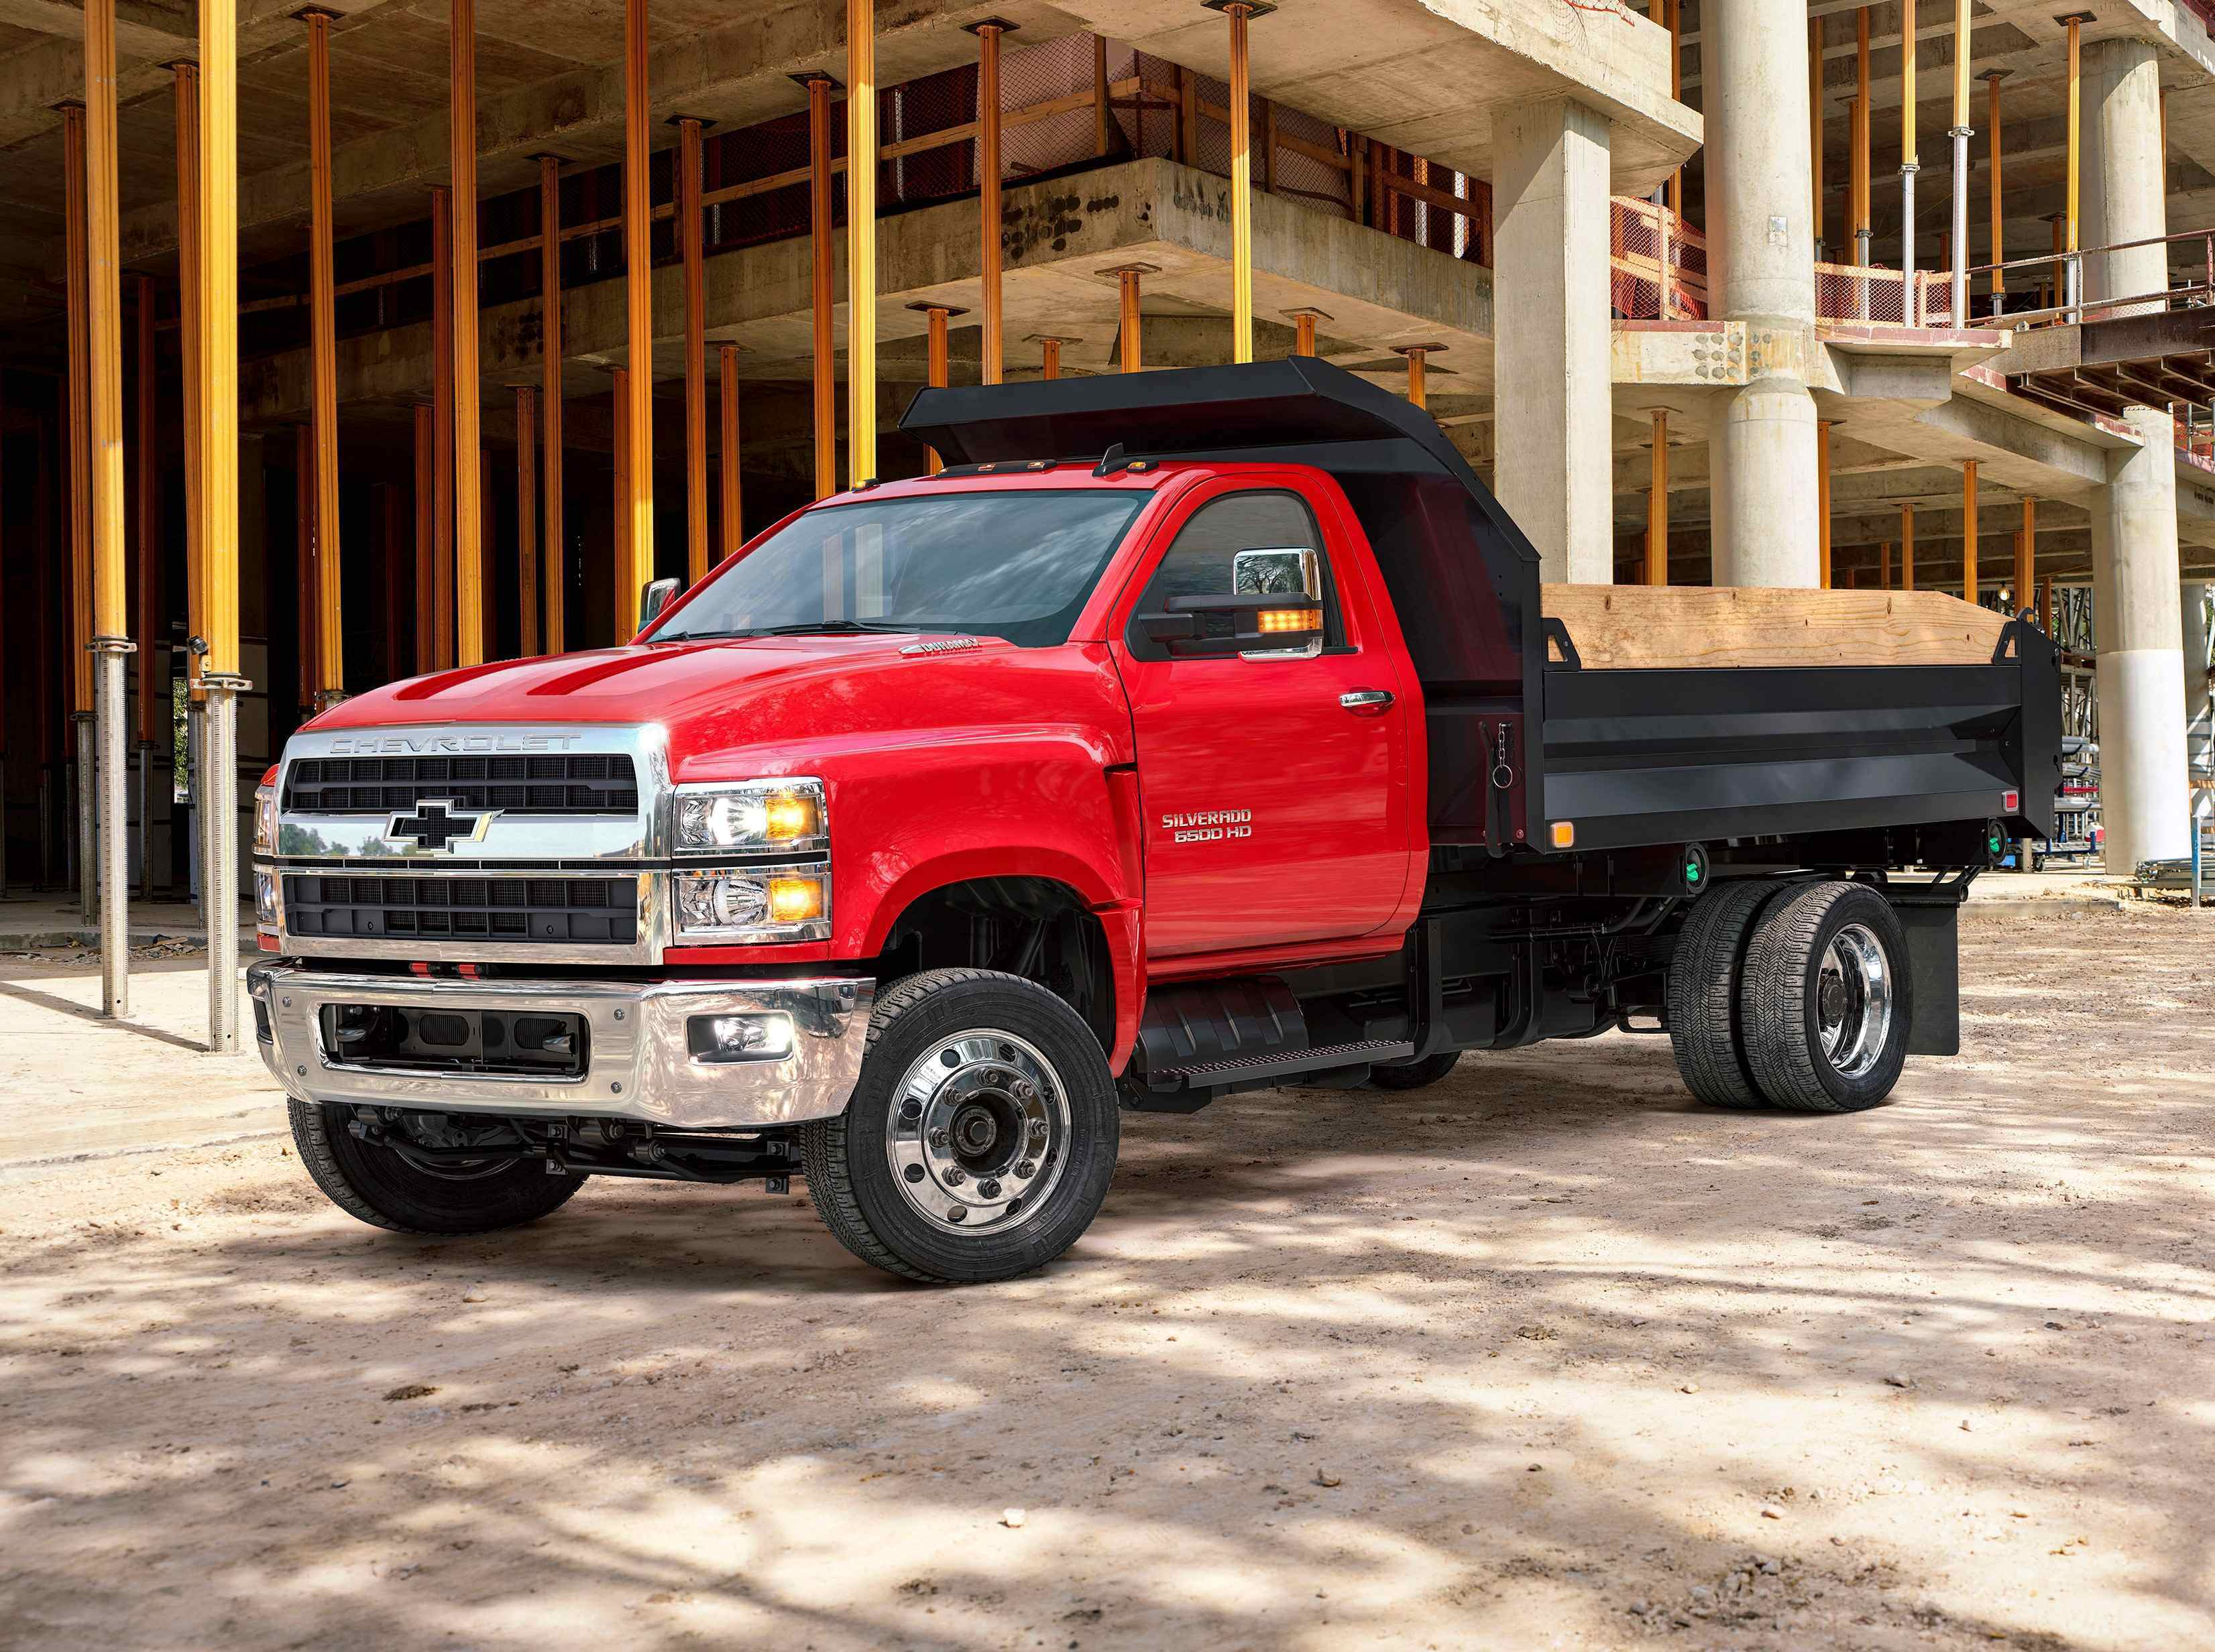 93 Gallery of 2019 Chevrolet Heavy Duty Trucks Pricing with 2019 Chevrolet Heavy Duty Trucks